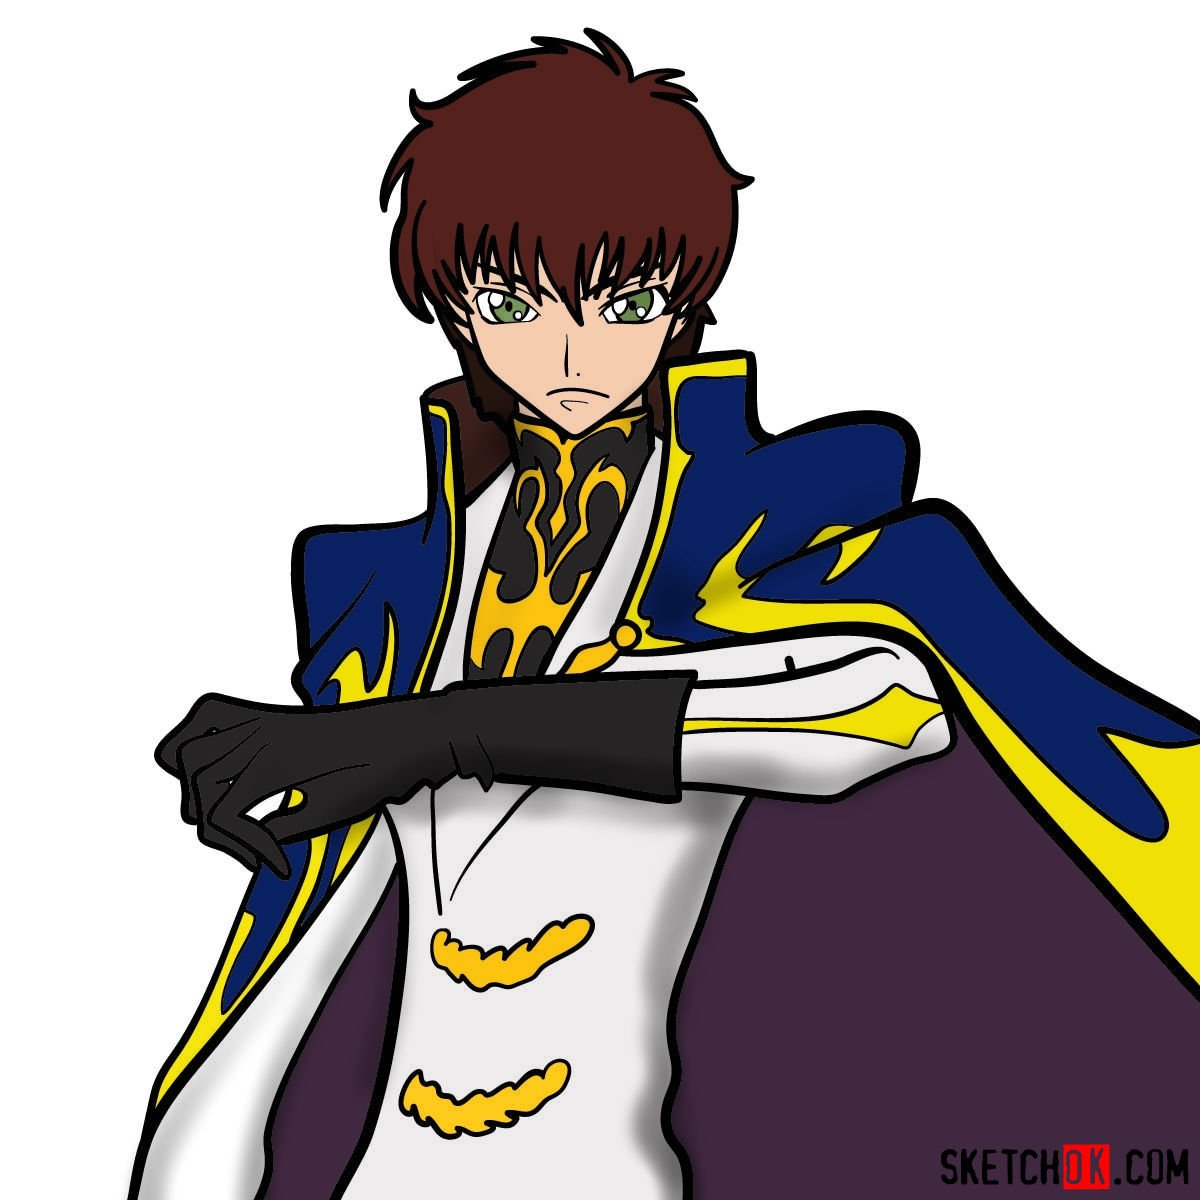 How to draw Suzaku Kururugi | Code Geass anime